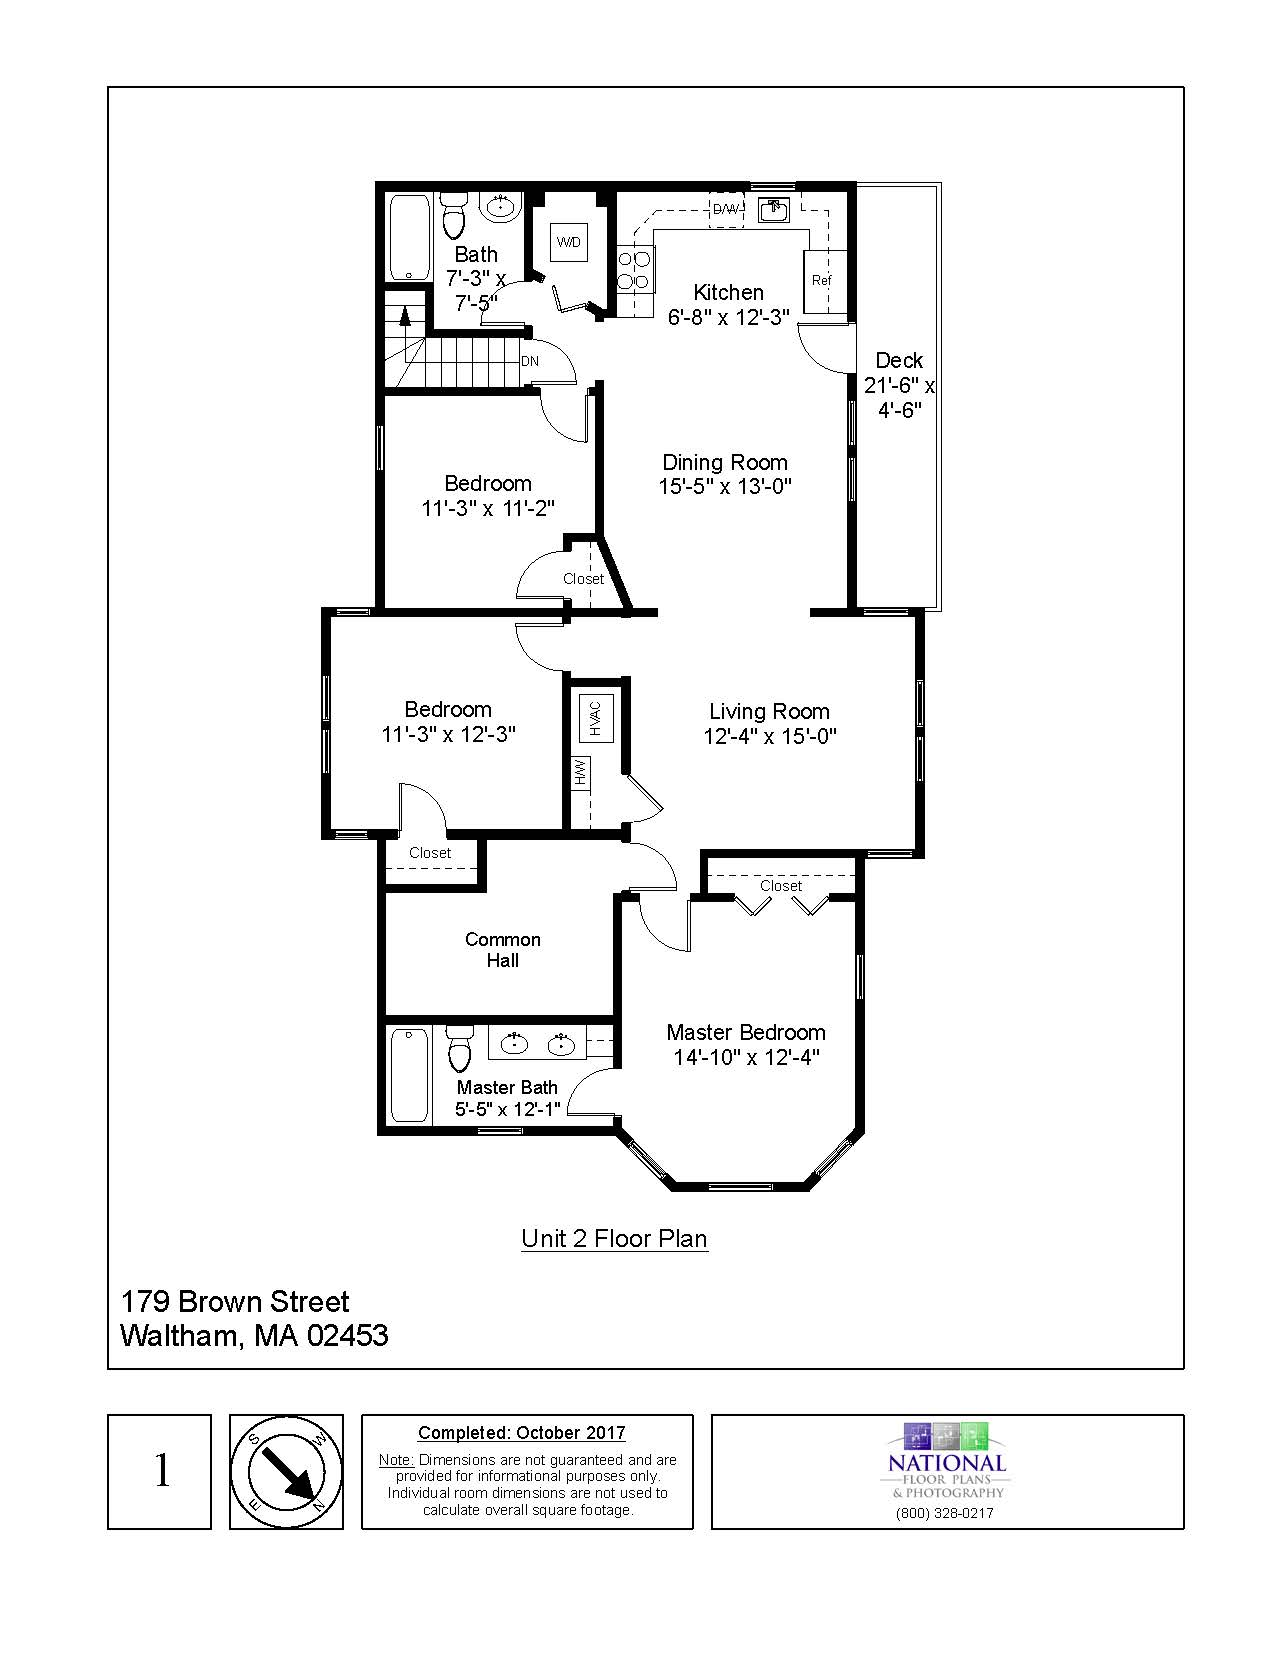 179 Brown Street; #2, Waltham, MA - Floor plan